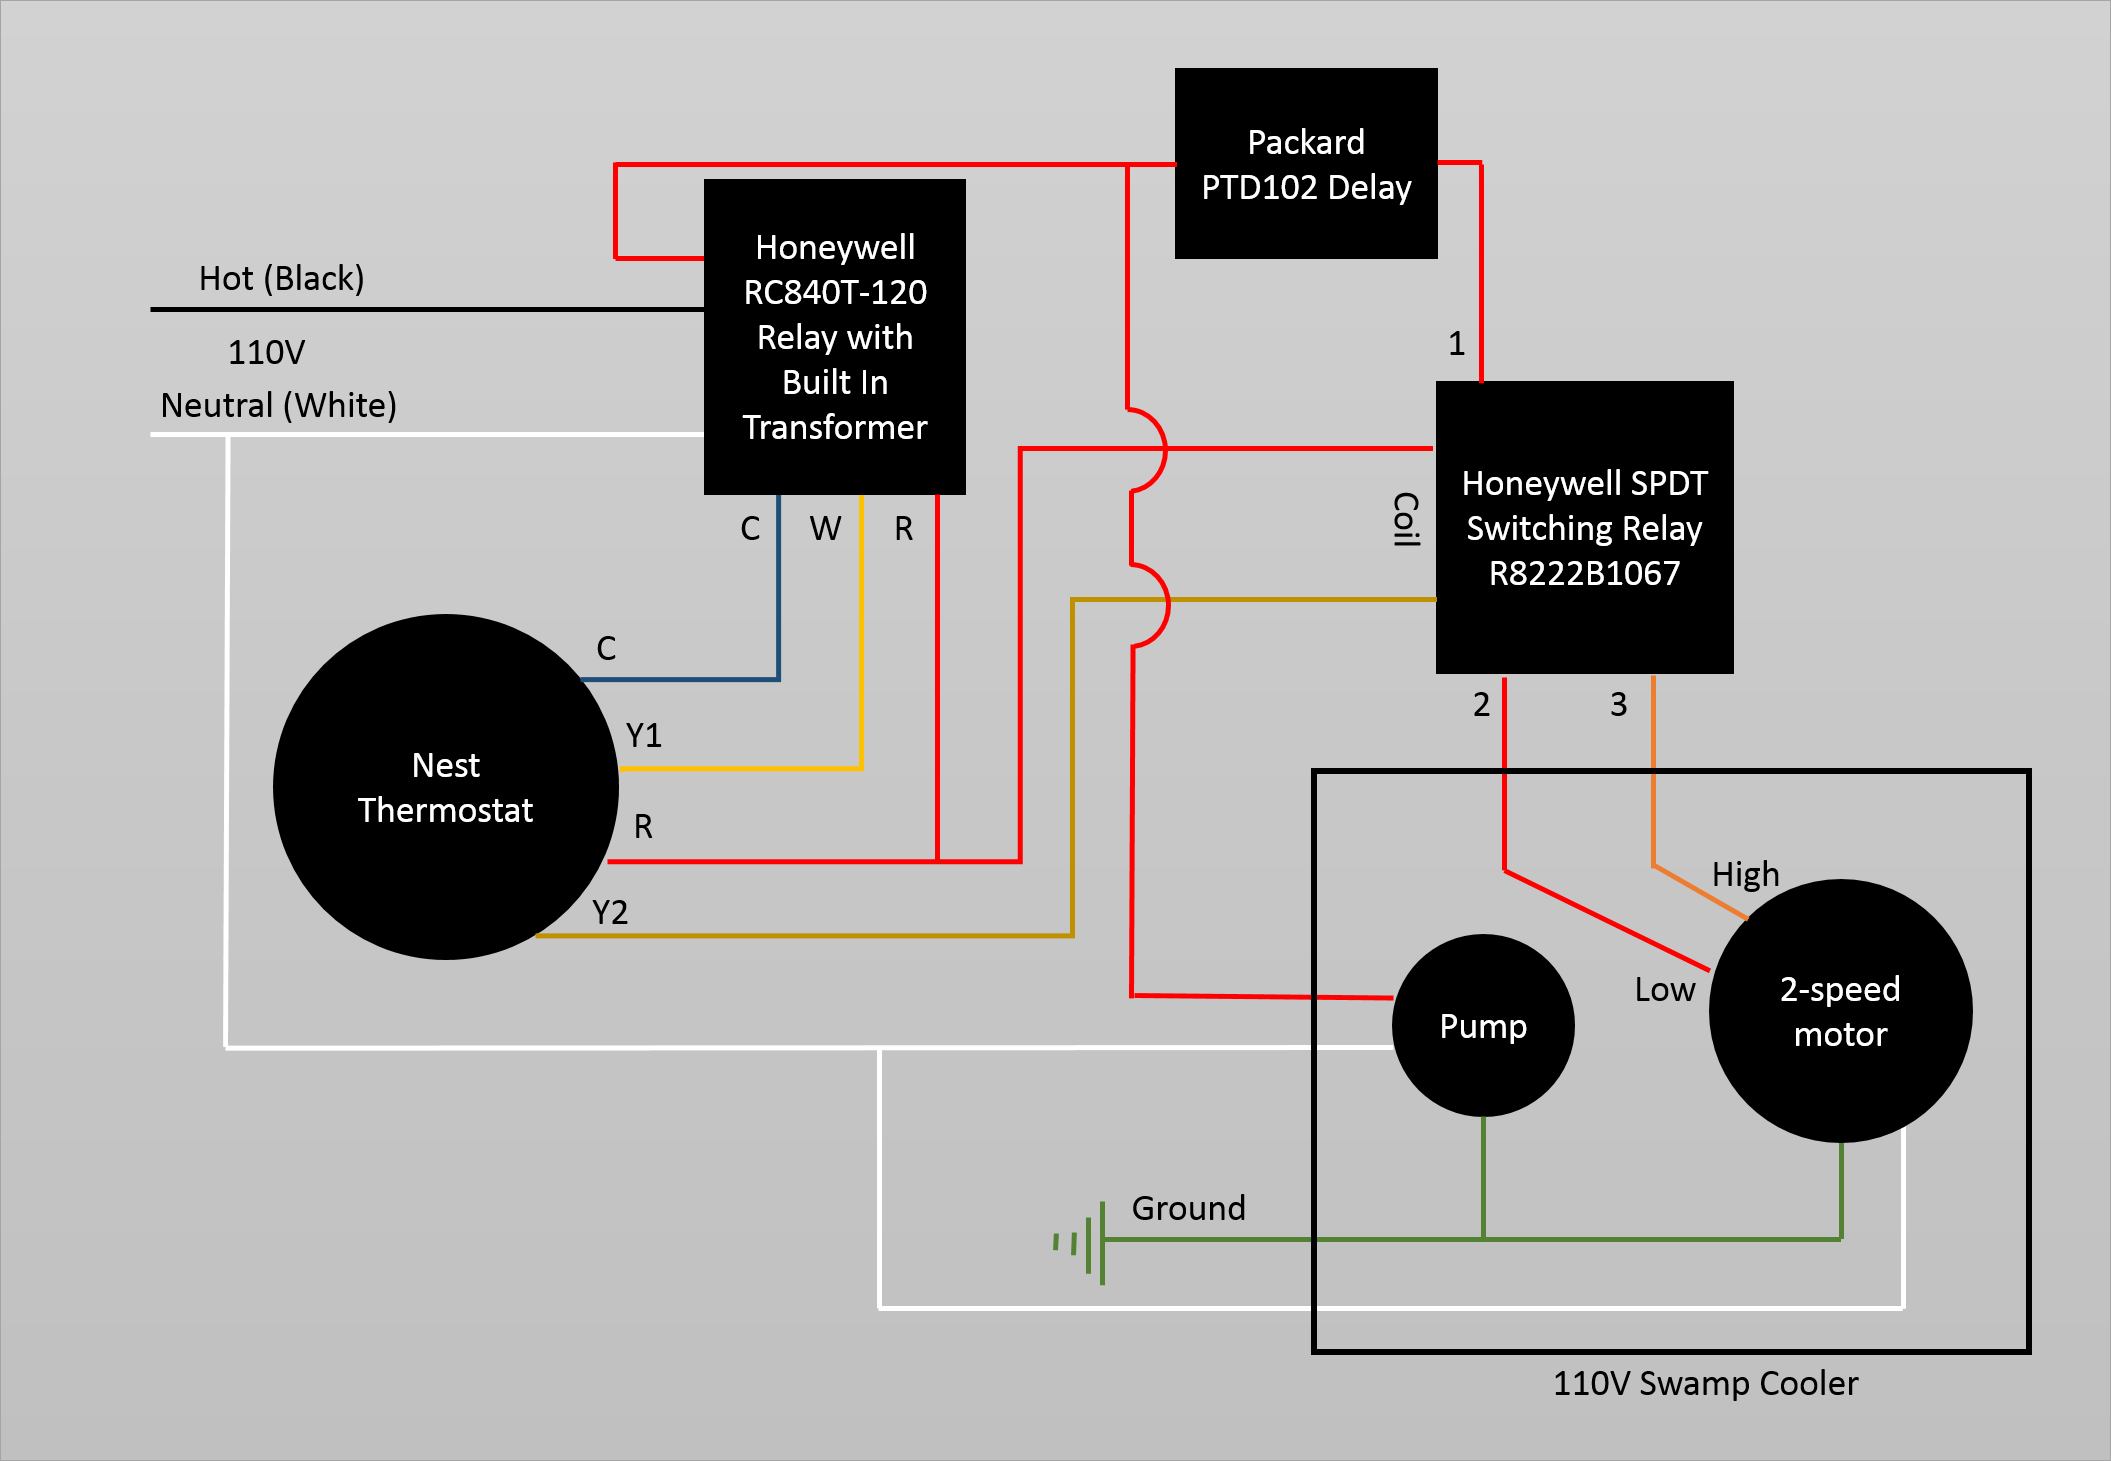 Wiring - Controlling 110V Swamp Cooler Using Nest Thermostat - Home - Nest 2Nd Generation Wiring Diagram Uk